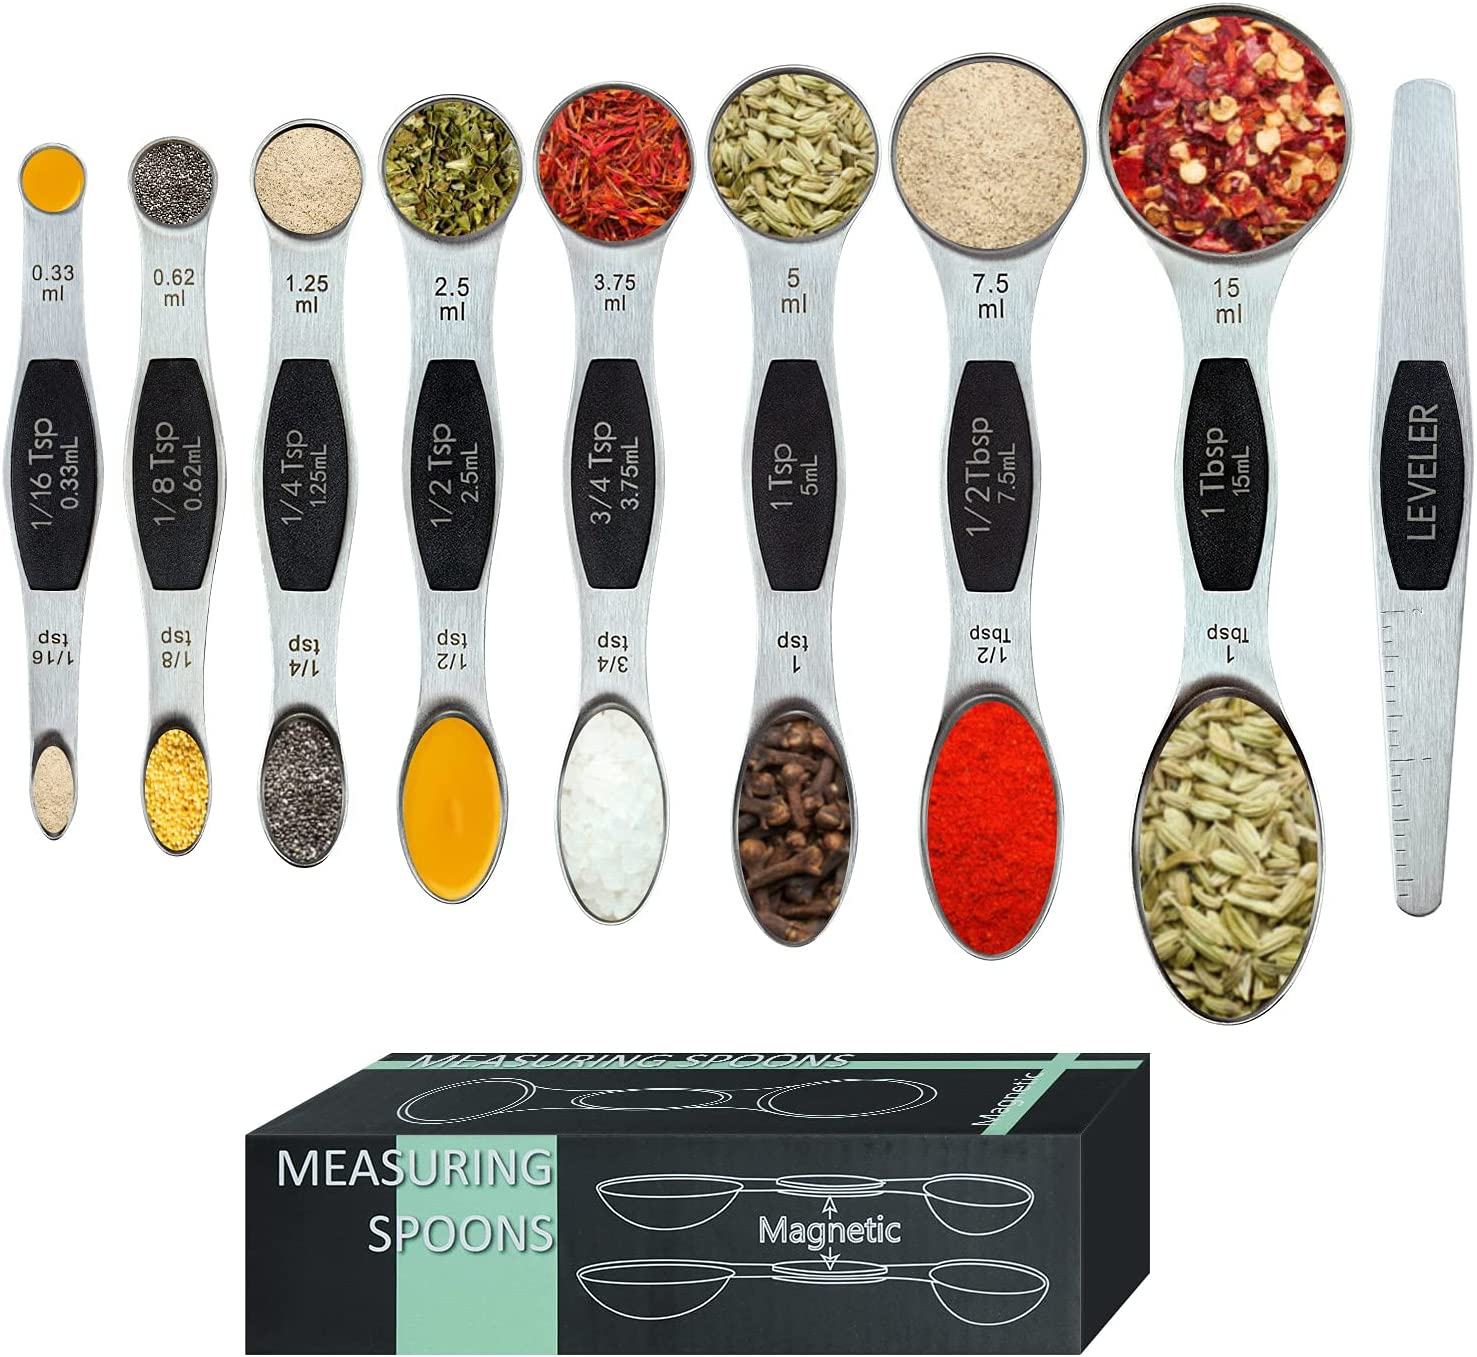 Tibroni Magnetic Measuring Spoons shopping Set Stainless Steel Pieces 9 Attention brand